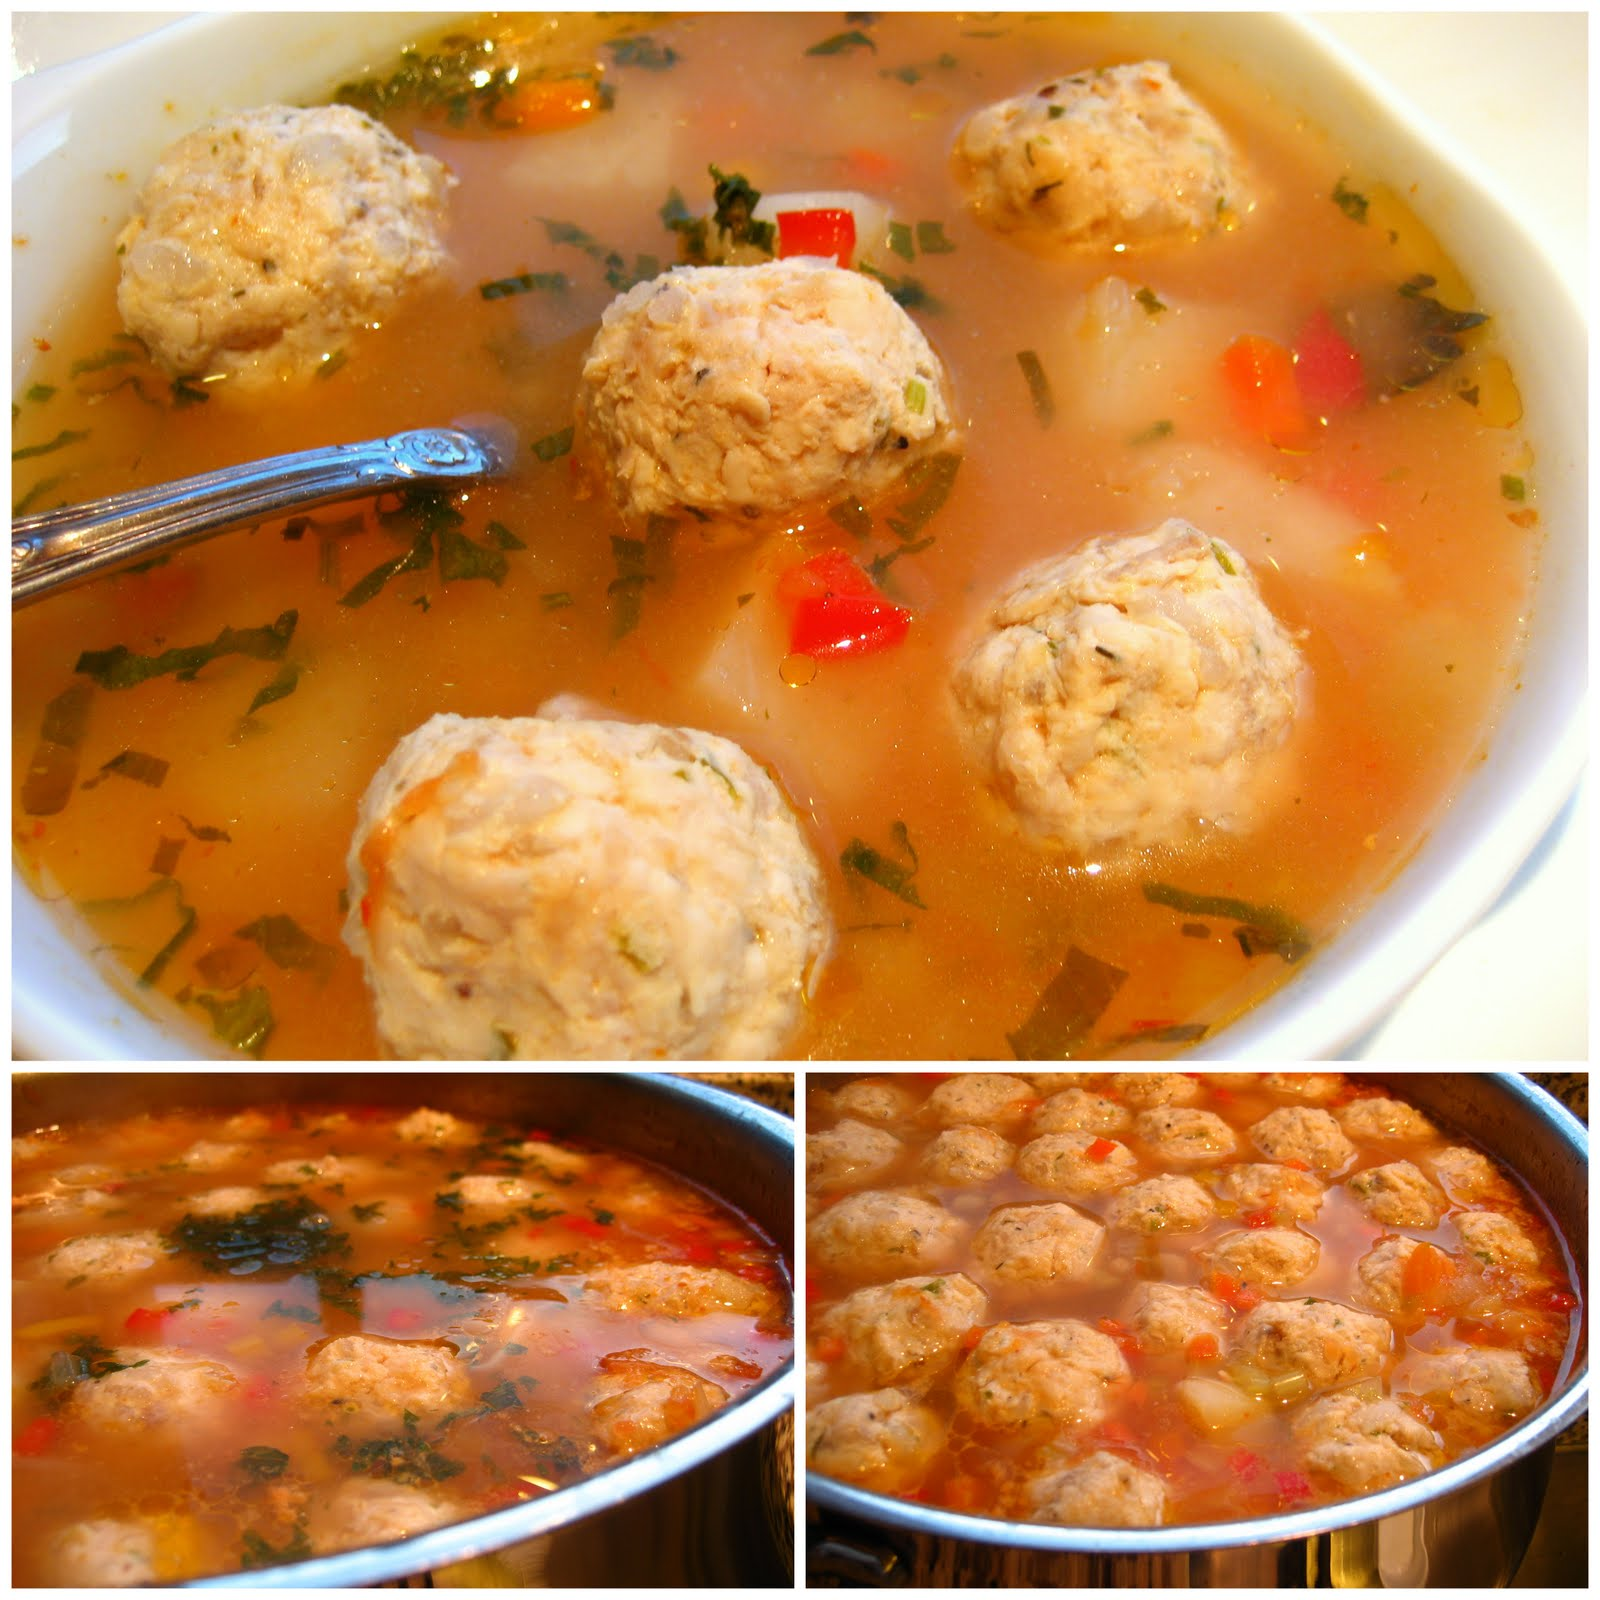 Home Cooking In Montana: Romanian Meatball Soup...Ciorba de Perisoare